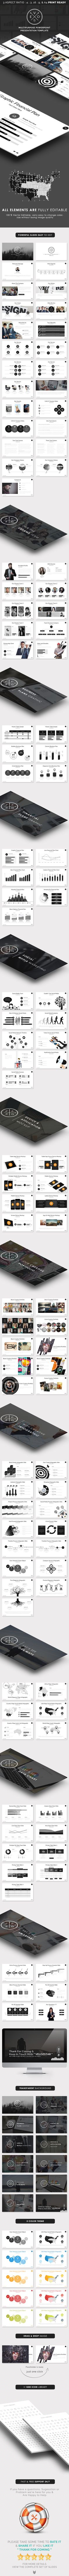 EVO  Multipurpose Powerpoint Presentation Template — Theme THMX #best #cool powerpoint templates • Download ➝ https://graphicriver.net/item/evo-multipurpose-powerpoint-presentation-template/18765150?ref=pxcr